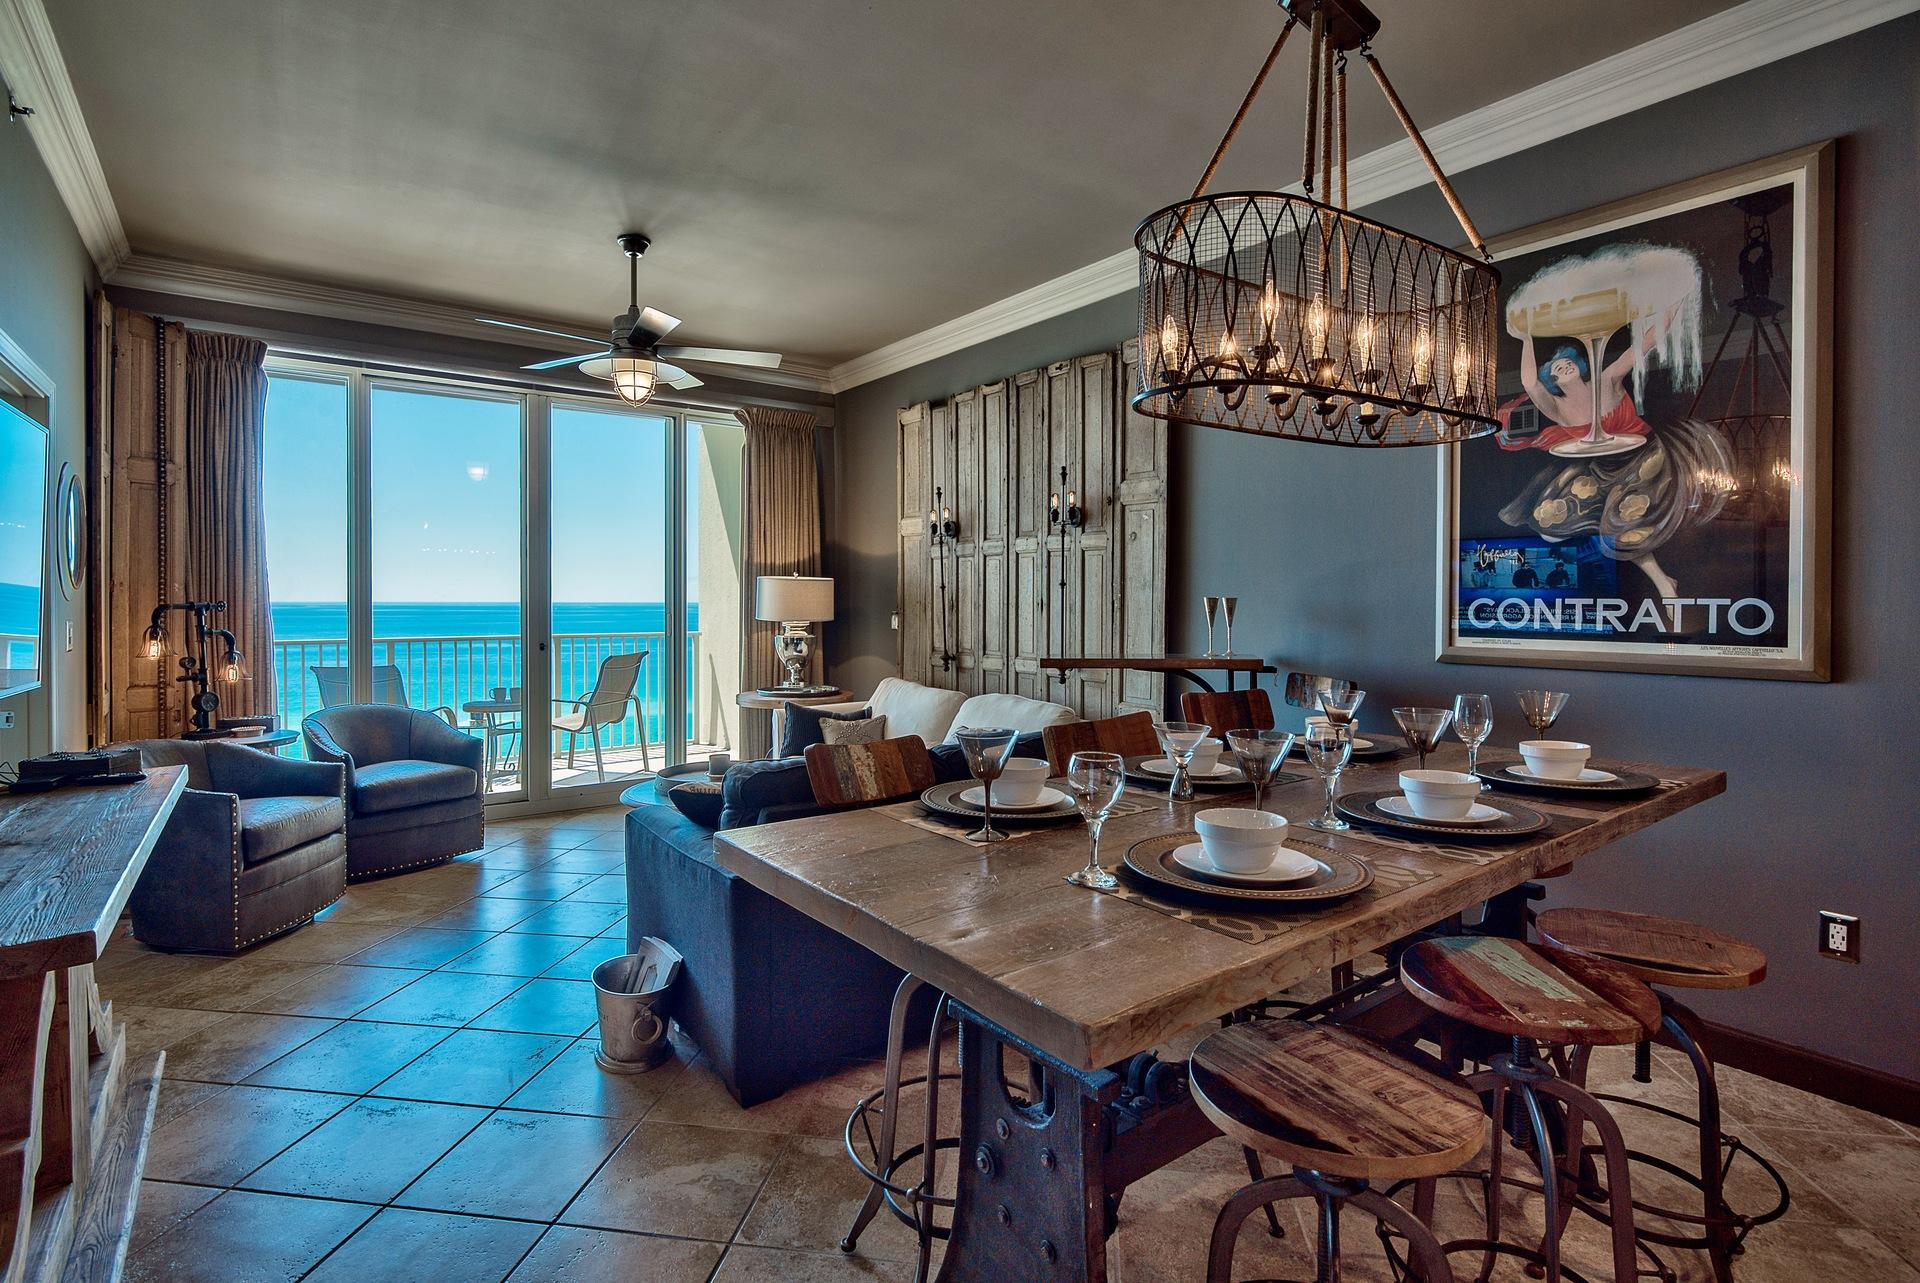 Open concept design with a view of the Gulf